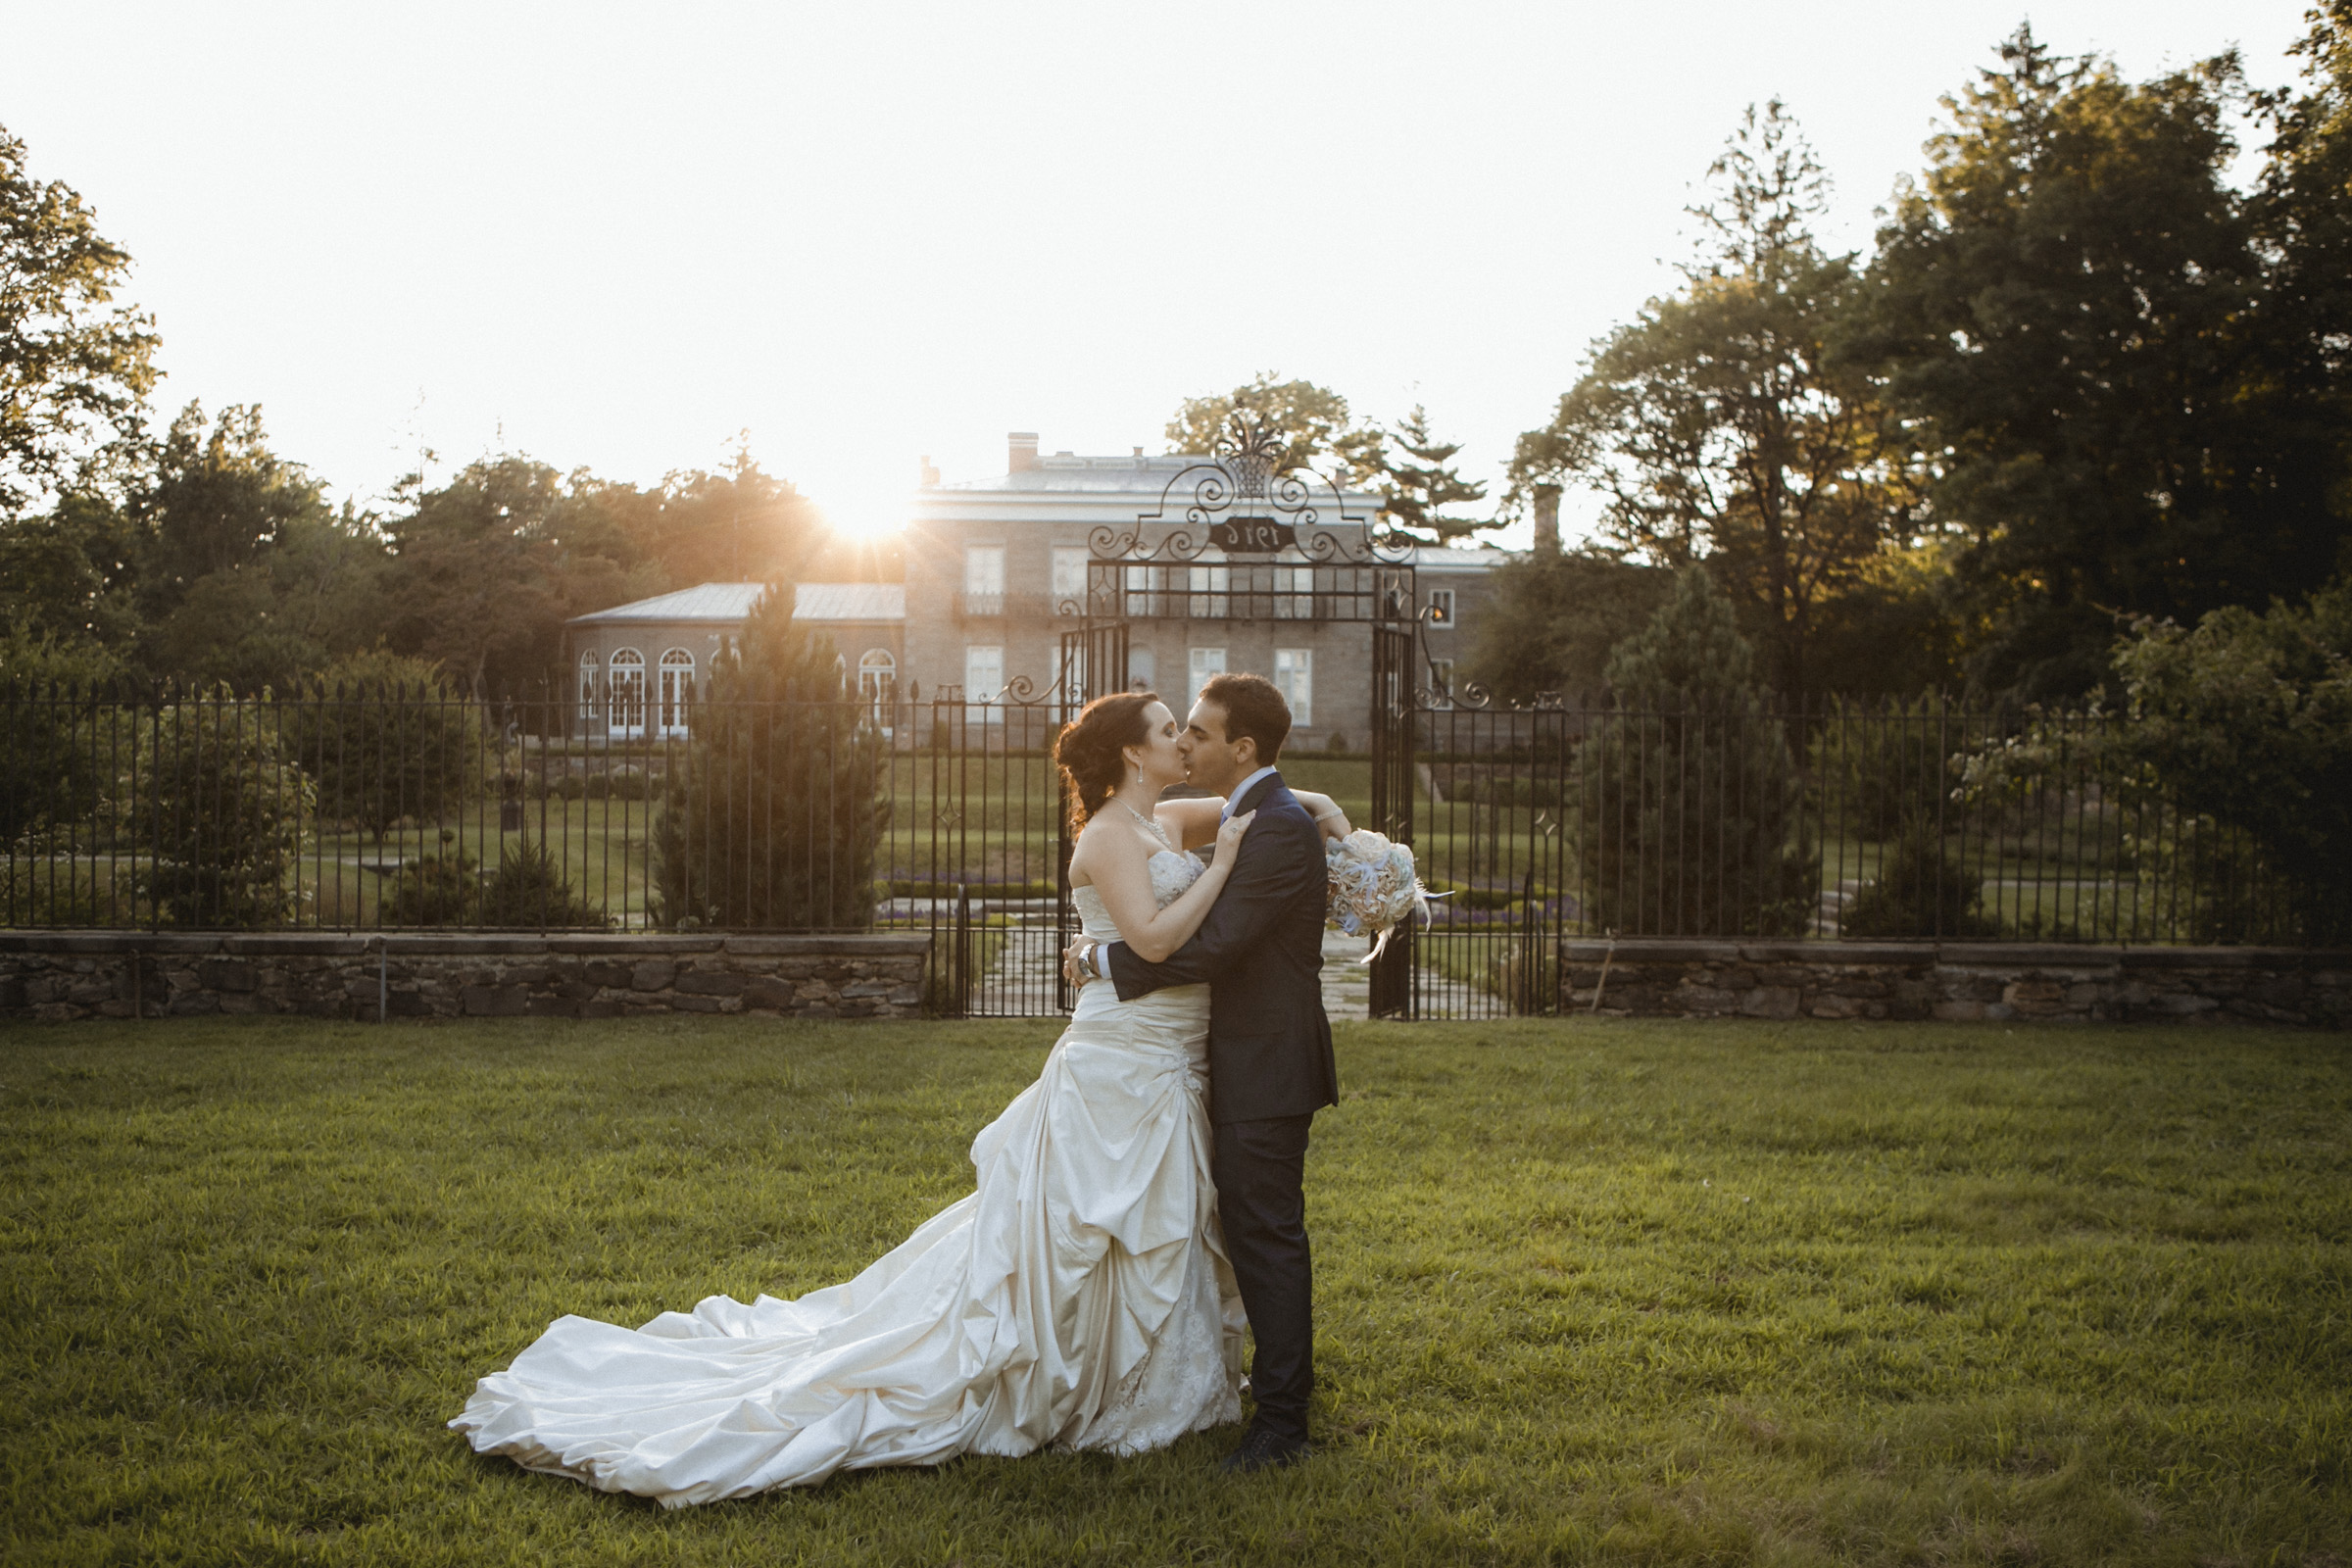 Romantic kiss backlit by sunset | Bartow-Pell Mansion wedding | Manhattan wedding | Bronx Wedding | Cathy & Antonello's wedding | Amy Sims Photography